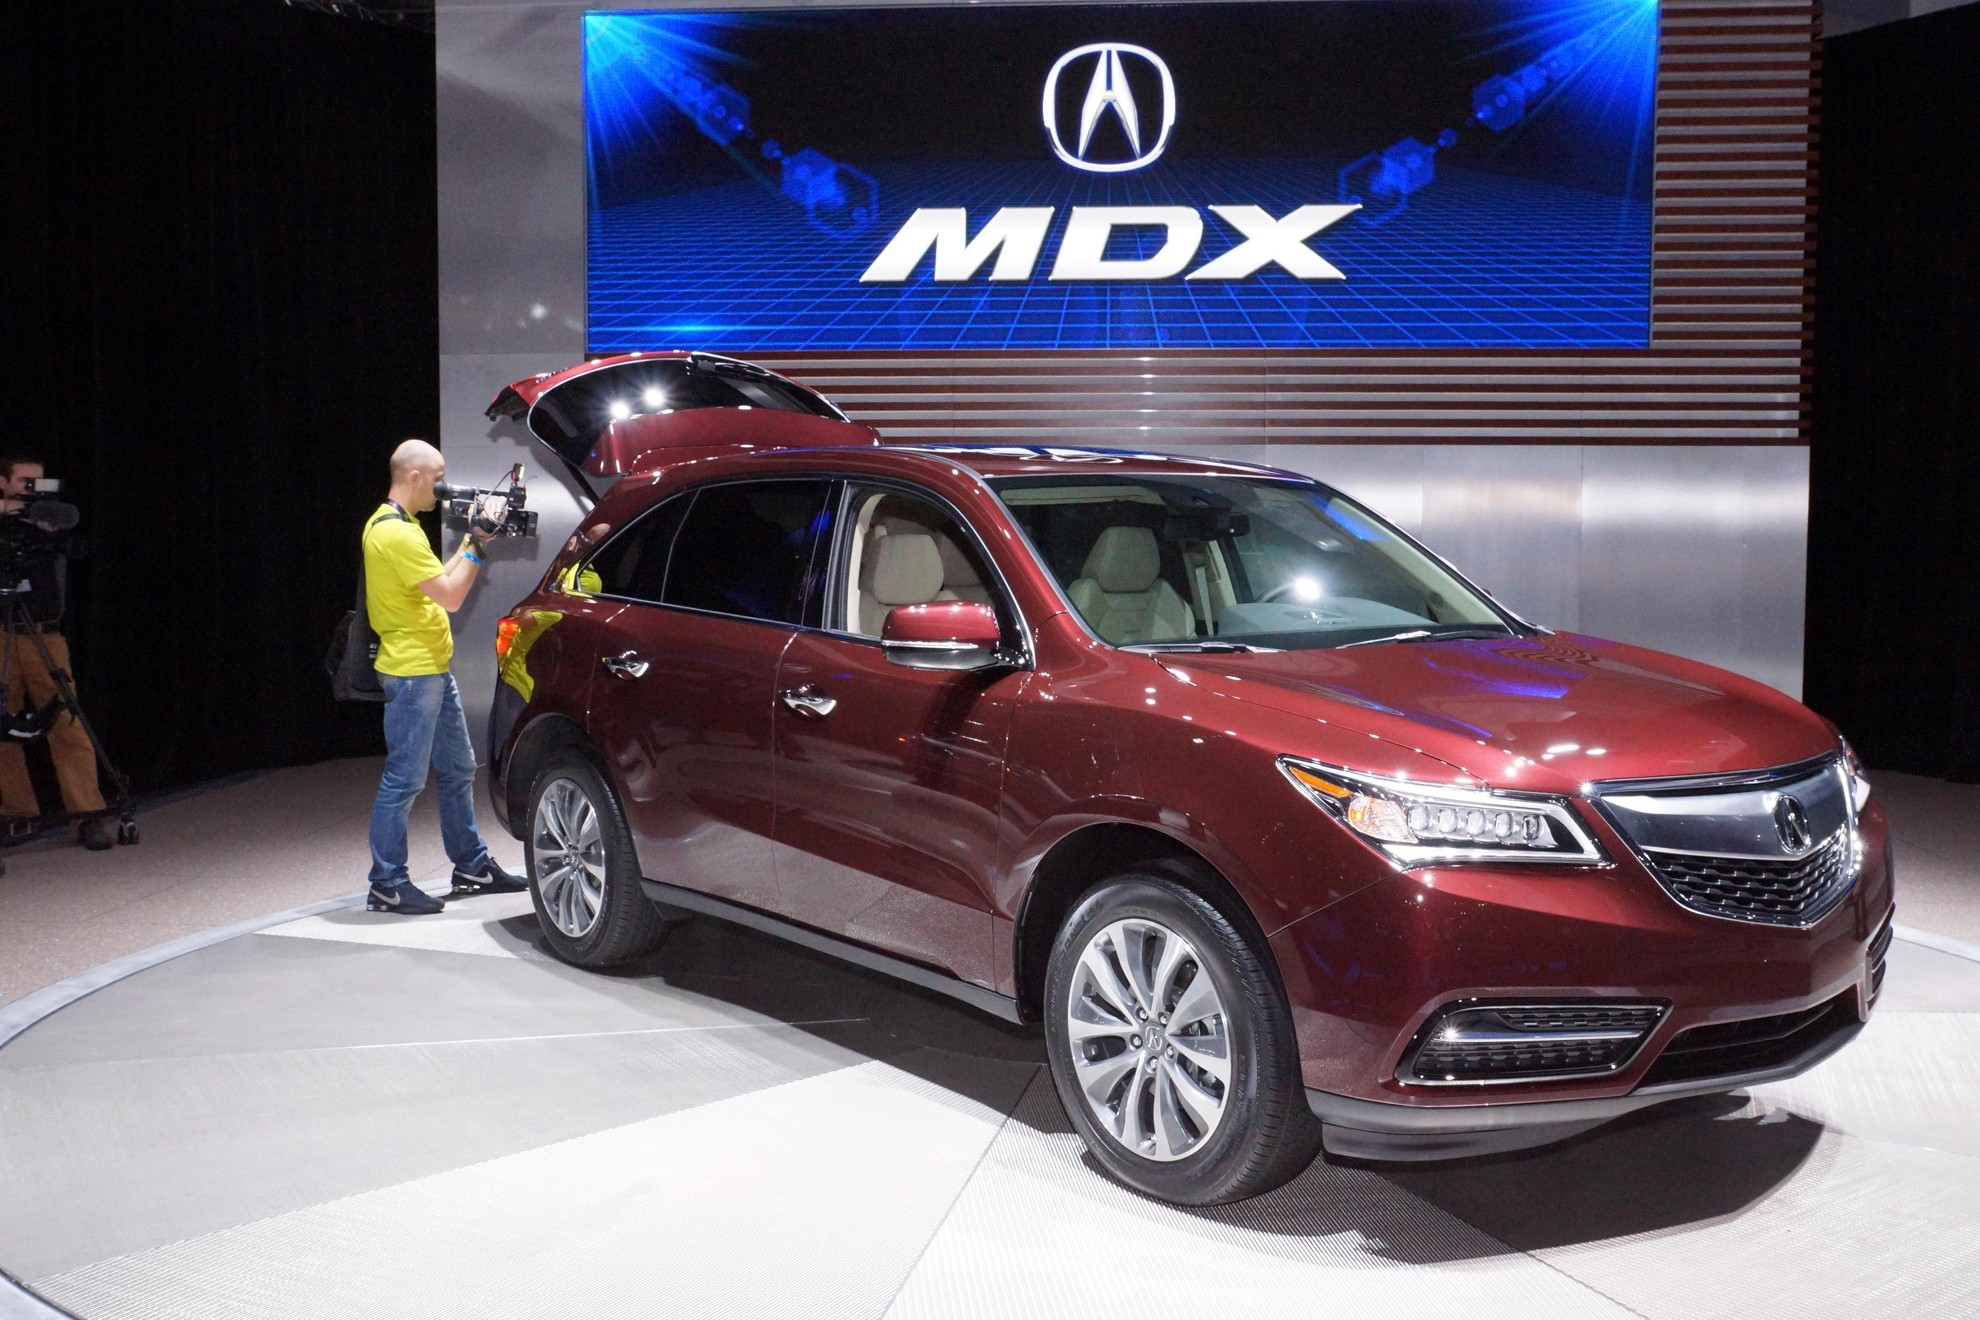 New York Auto Show 2013 the new Acura MDX